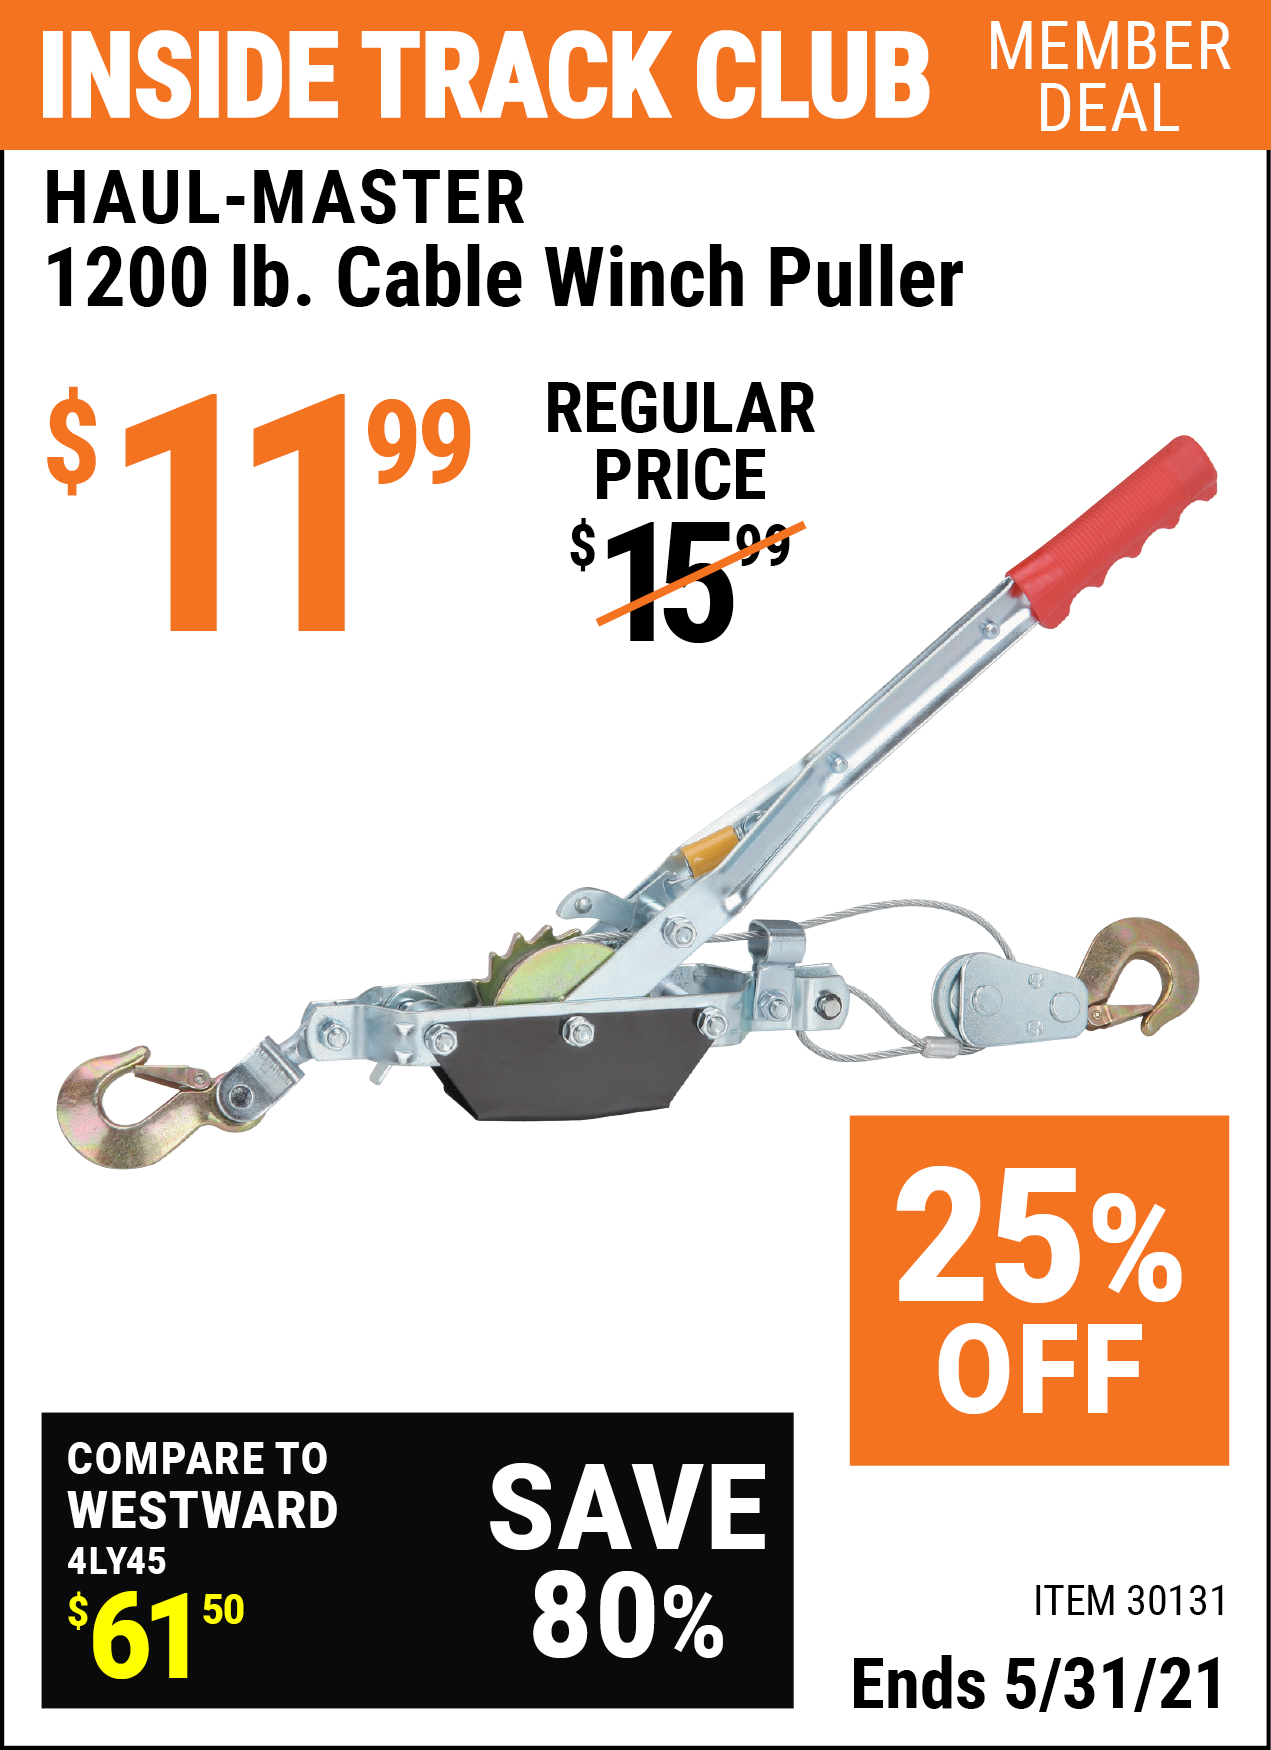 Inside Track Club members can buy the HAUL-MASTER 1200 Lbs. Cable Winch Puller (Item 30131) for $11.99, valid through 5/31/2021.